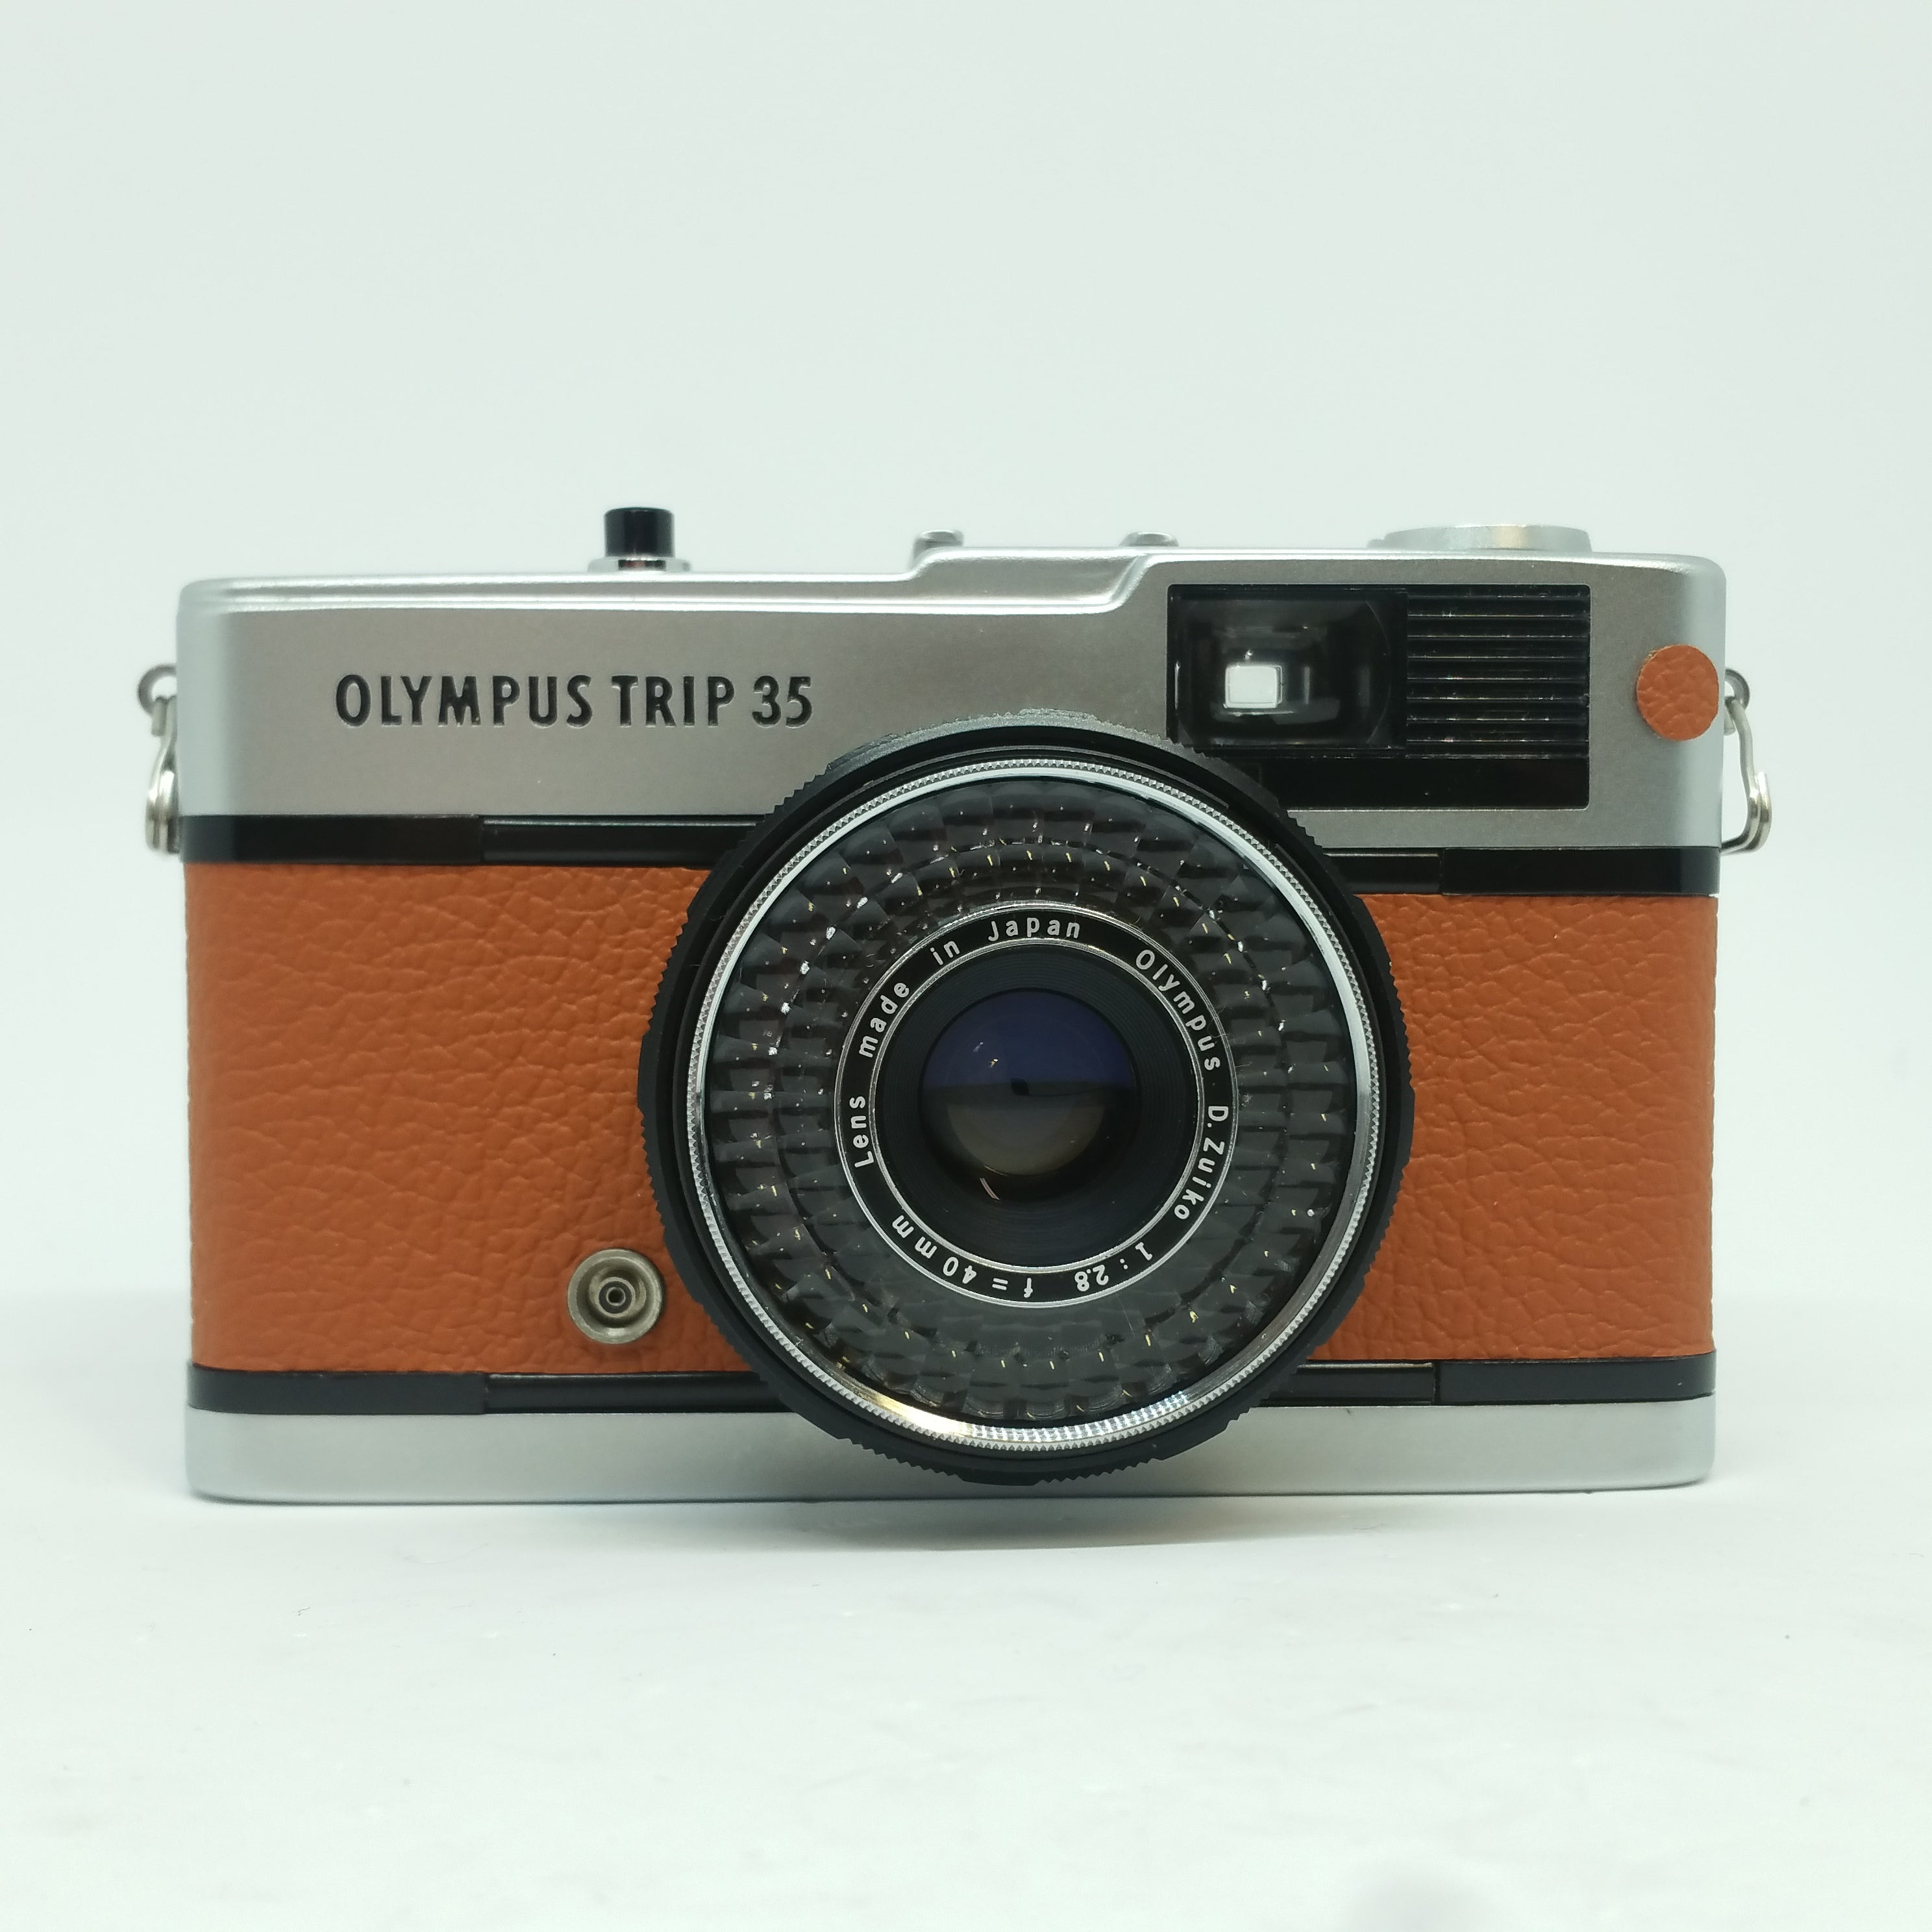 Olympus TRIP 35 customized  with ORANGE leather